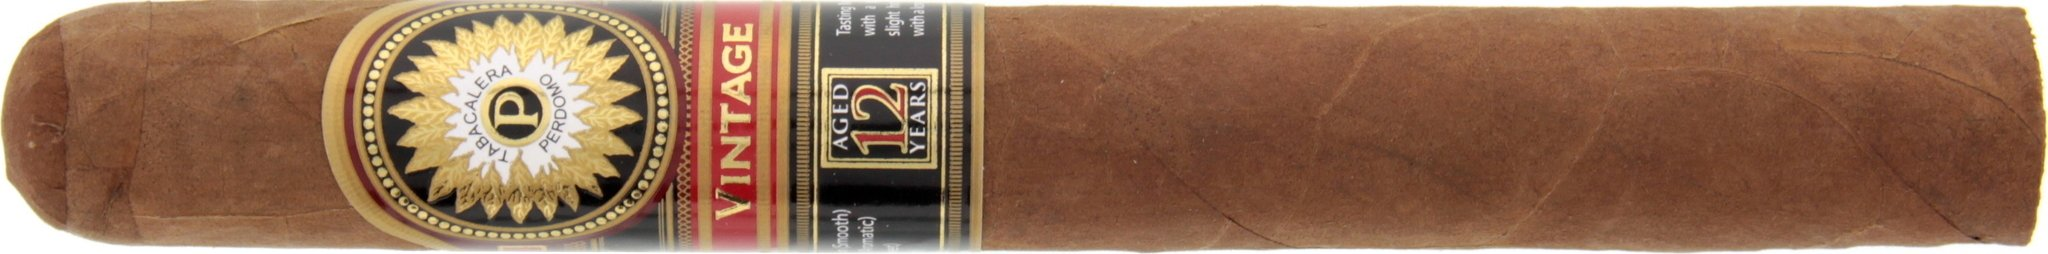 Perdomo Double Aged 12 Year Vintage (First Release 2014) Churchill (Sun Grown)